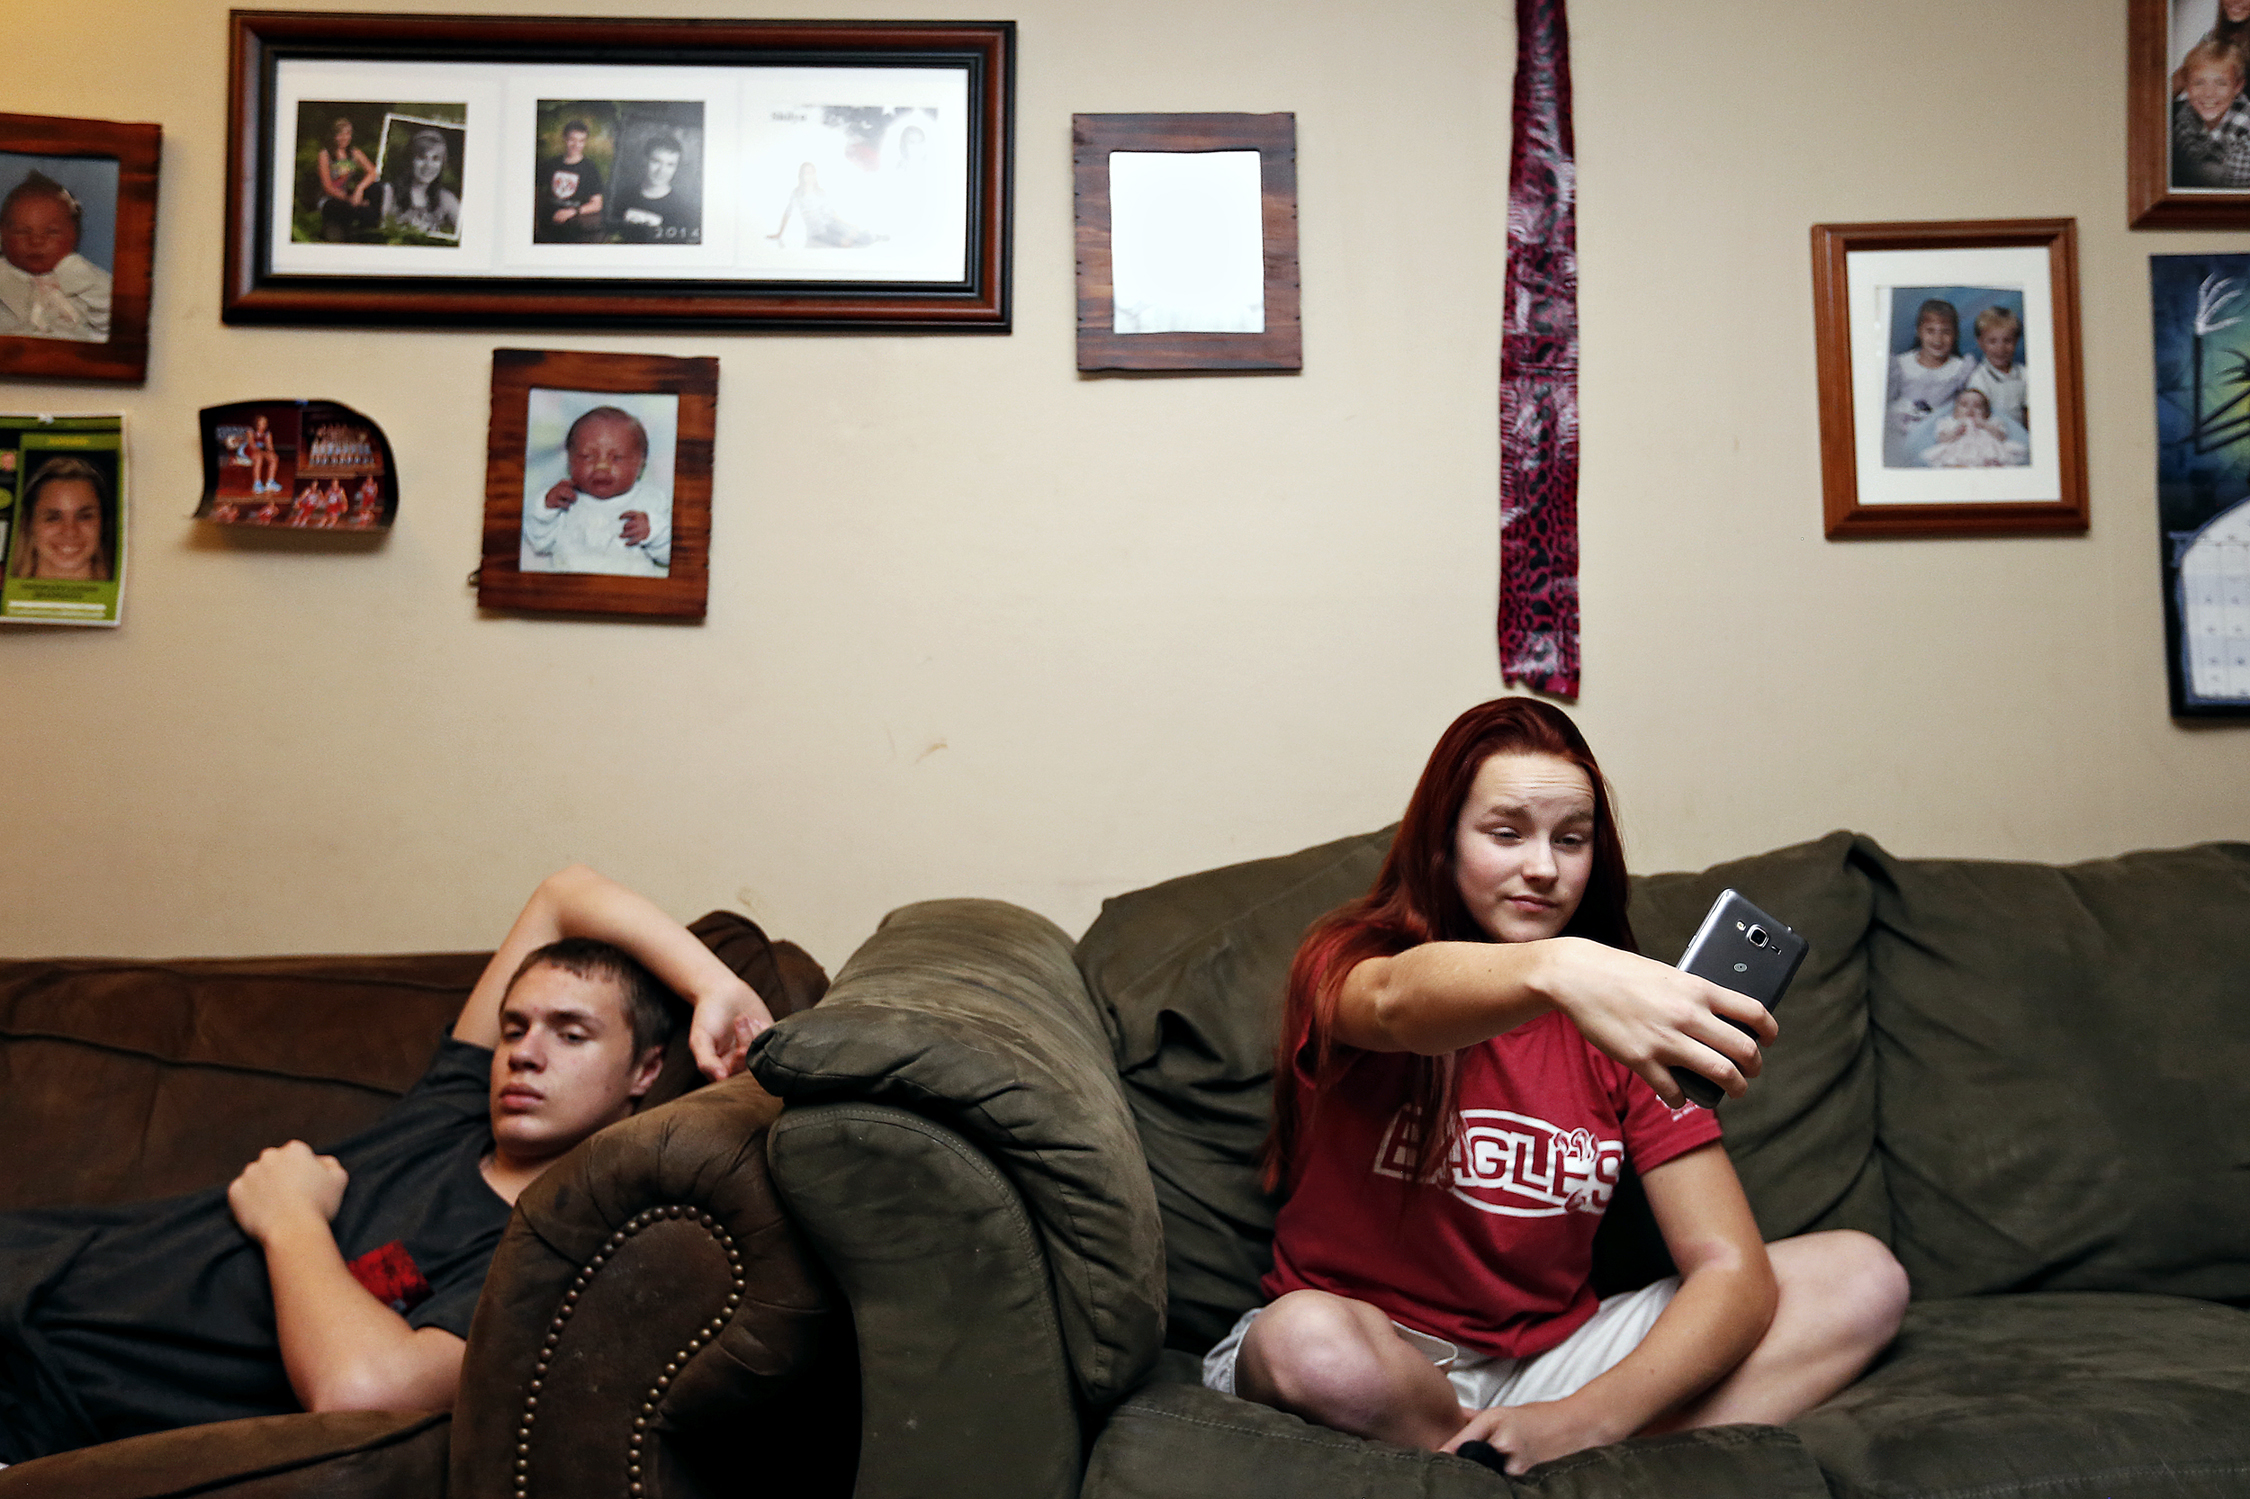 Shilyn Bradt takes a selfie while her brother Chance watches television at their home in Springfield, Mo. on Feb. 9, 2016.